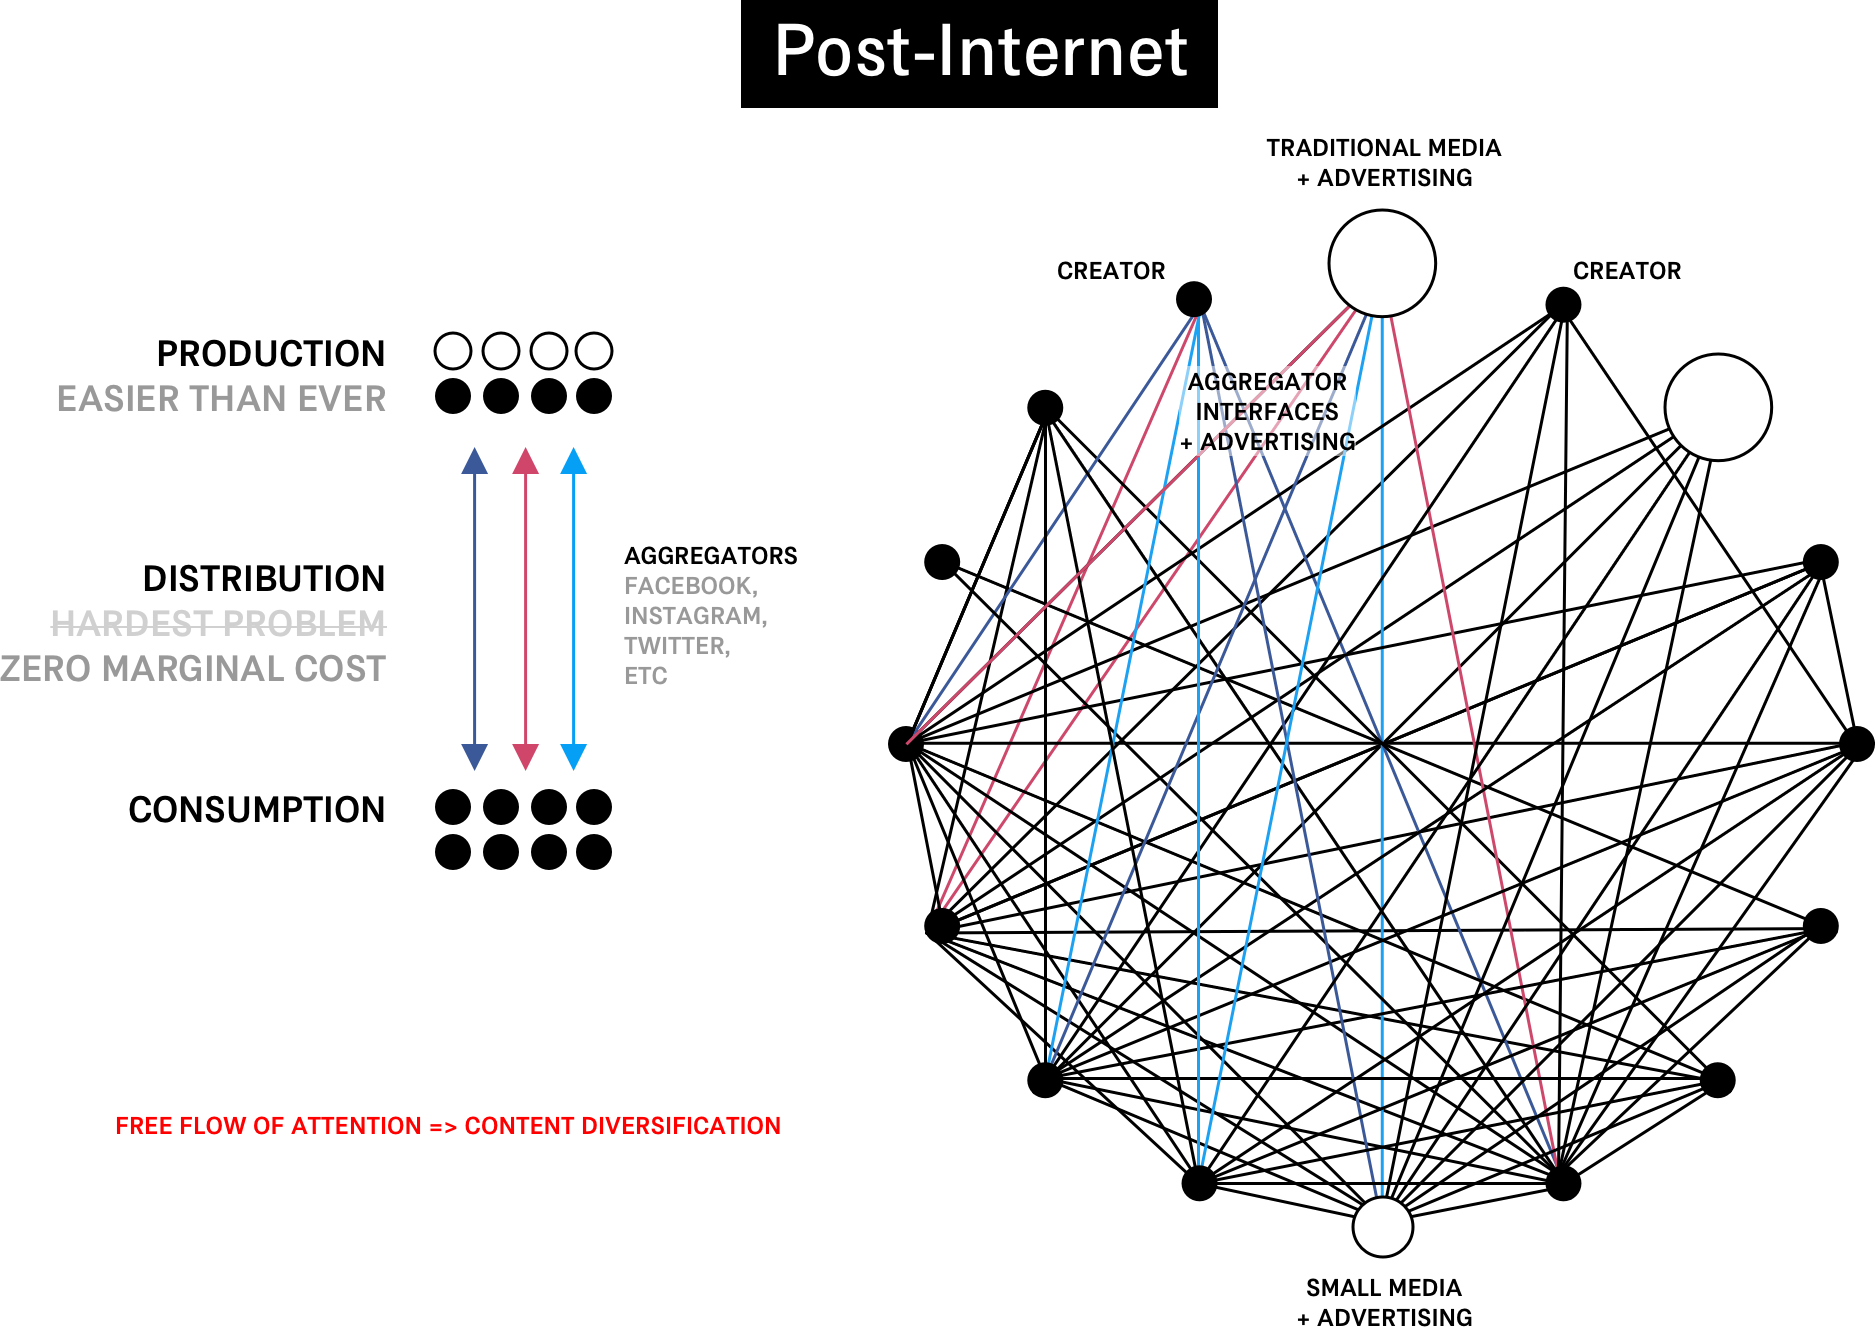 networkmodel-post-internet.png